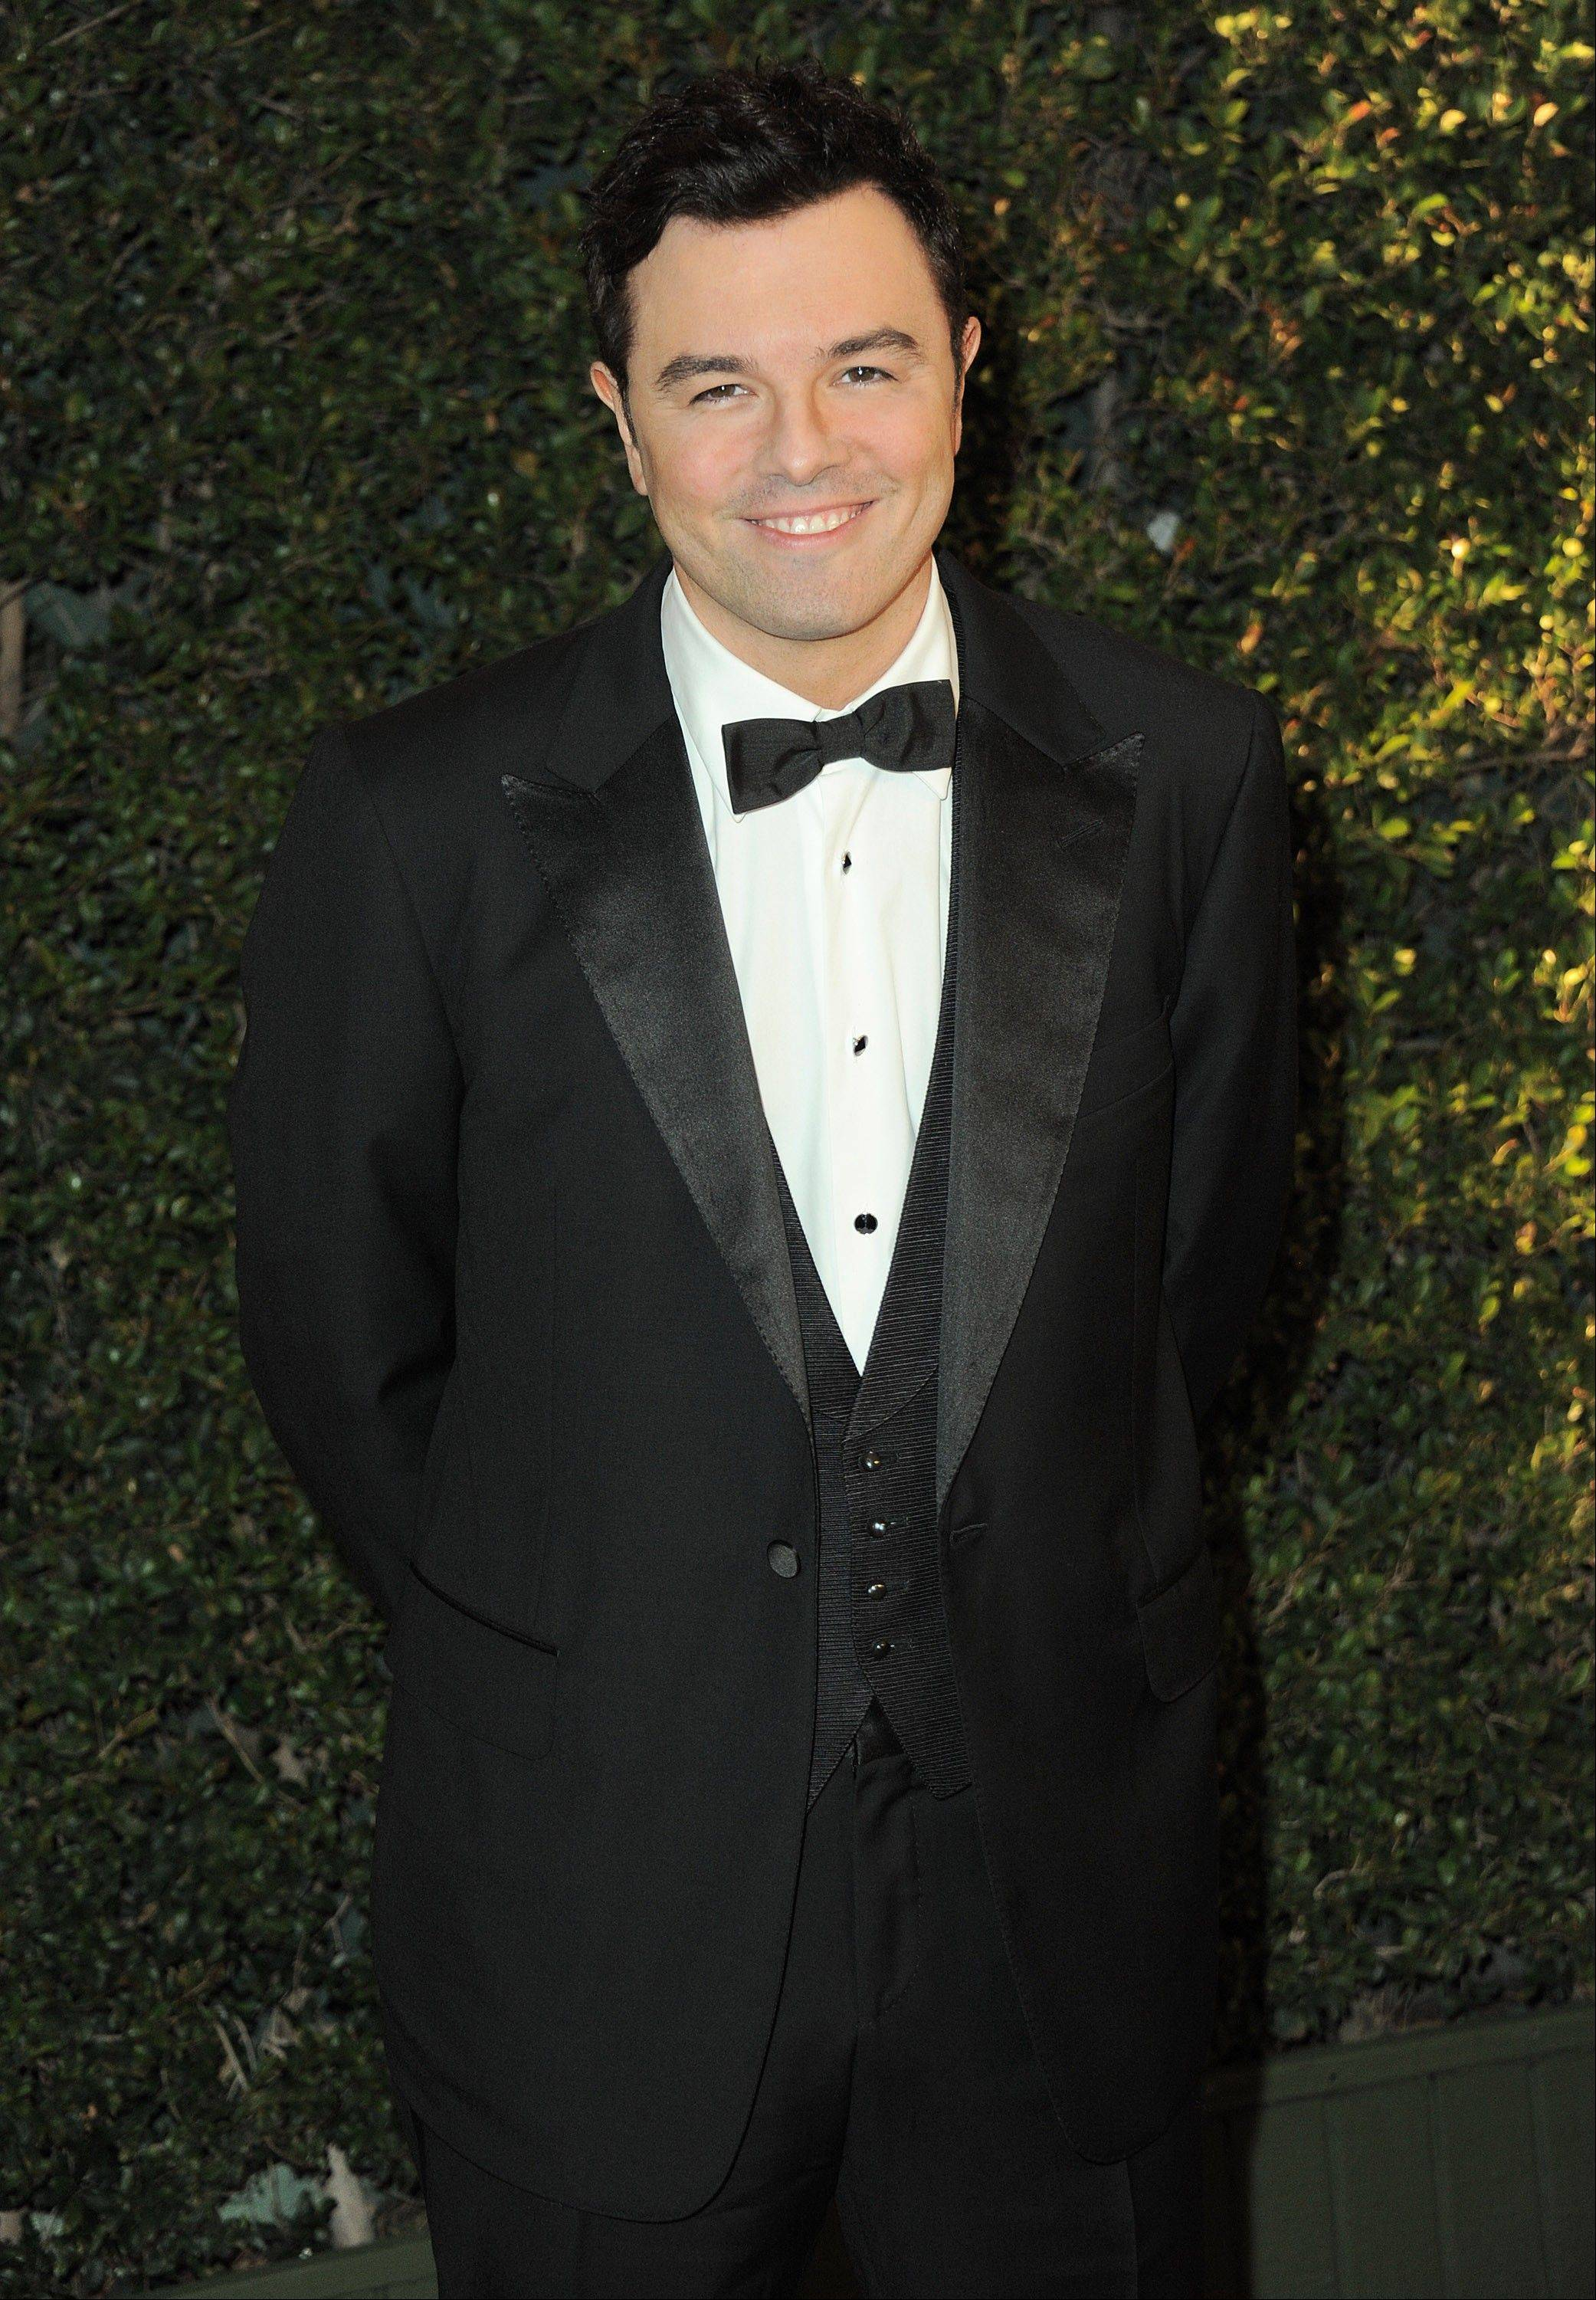 Academy officials say Oscar host Seth MacFarlane will join actress Emma Stone to reveal the nominees for the 85th annual Academy Awards Thursday.